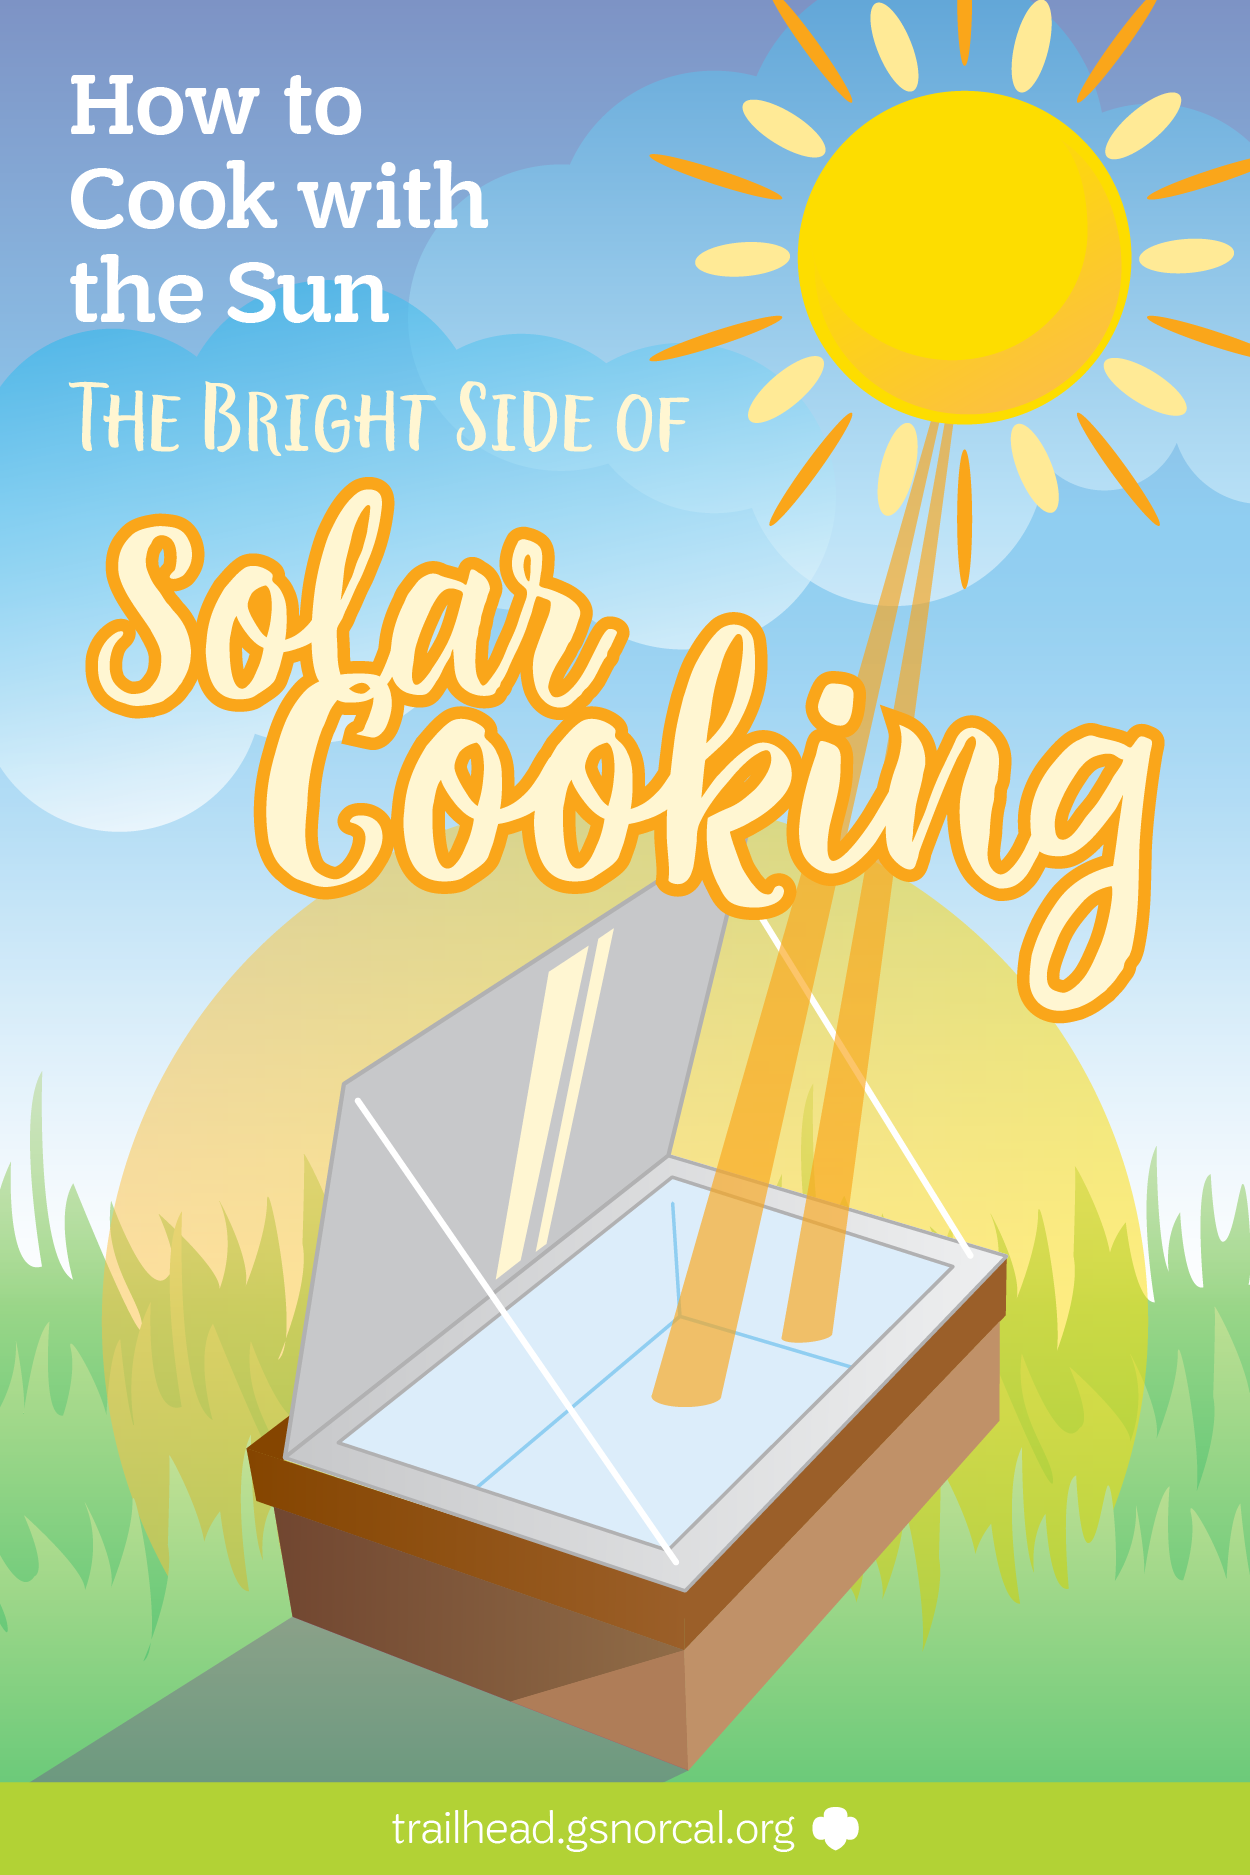 Sun and plant clipart for girl scout shirts png royalty free library Harness the power of the sun to get your outdoor cooking done ... png royalty free library